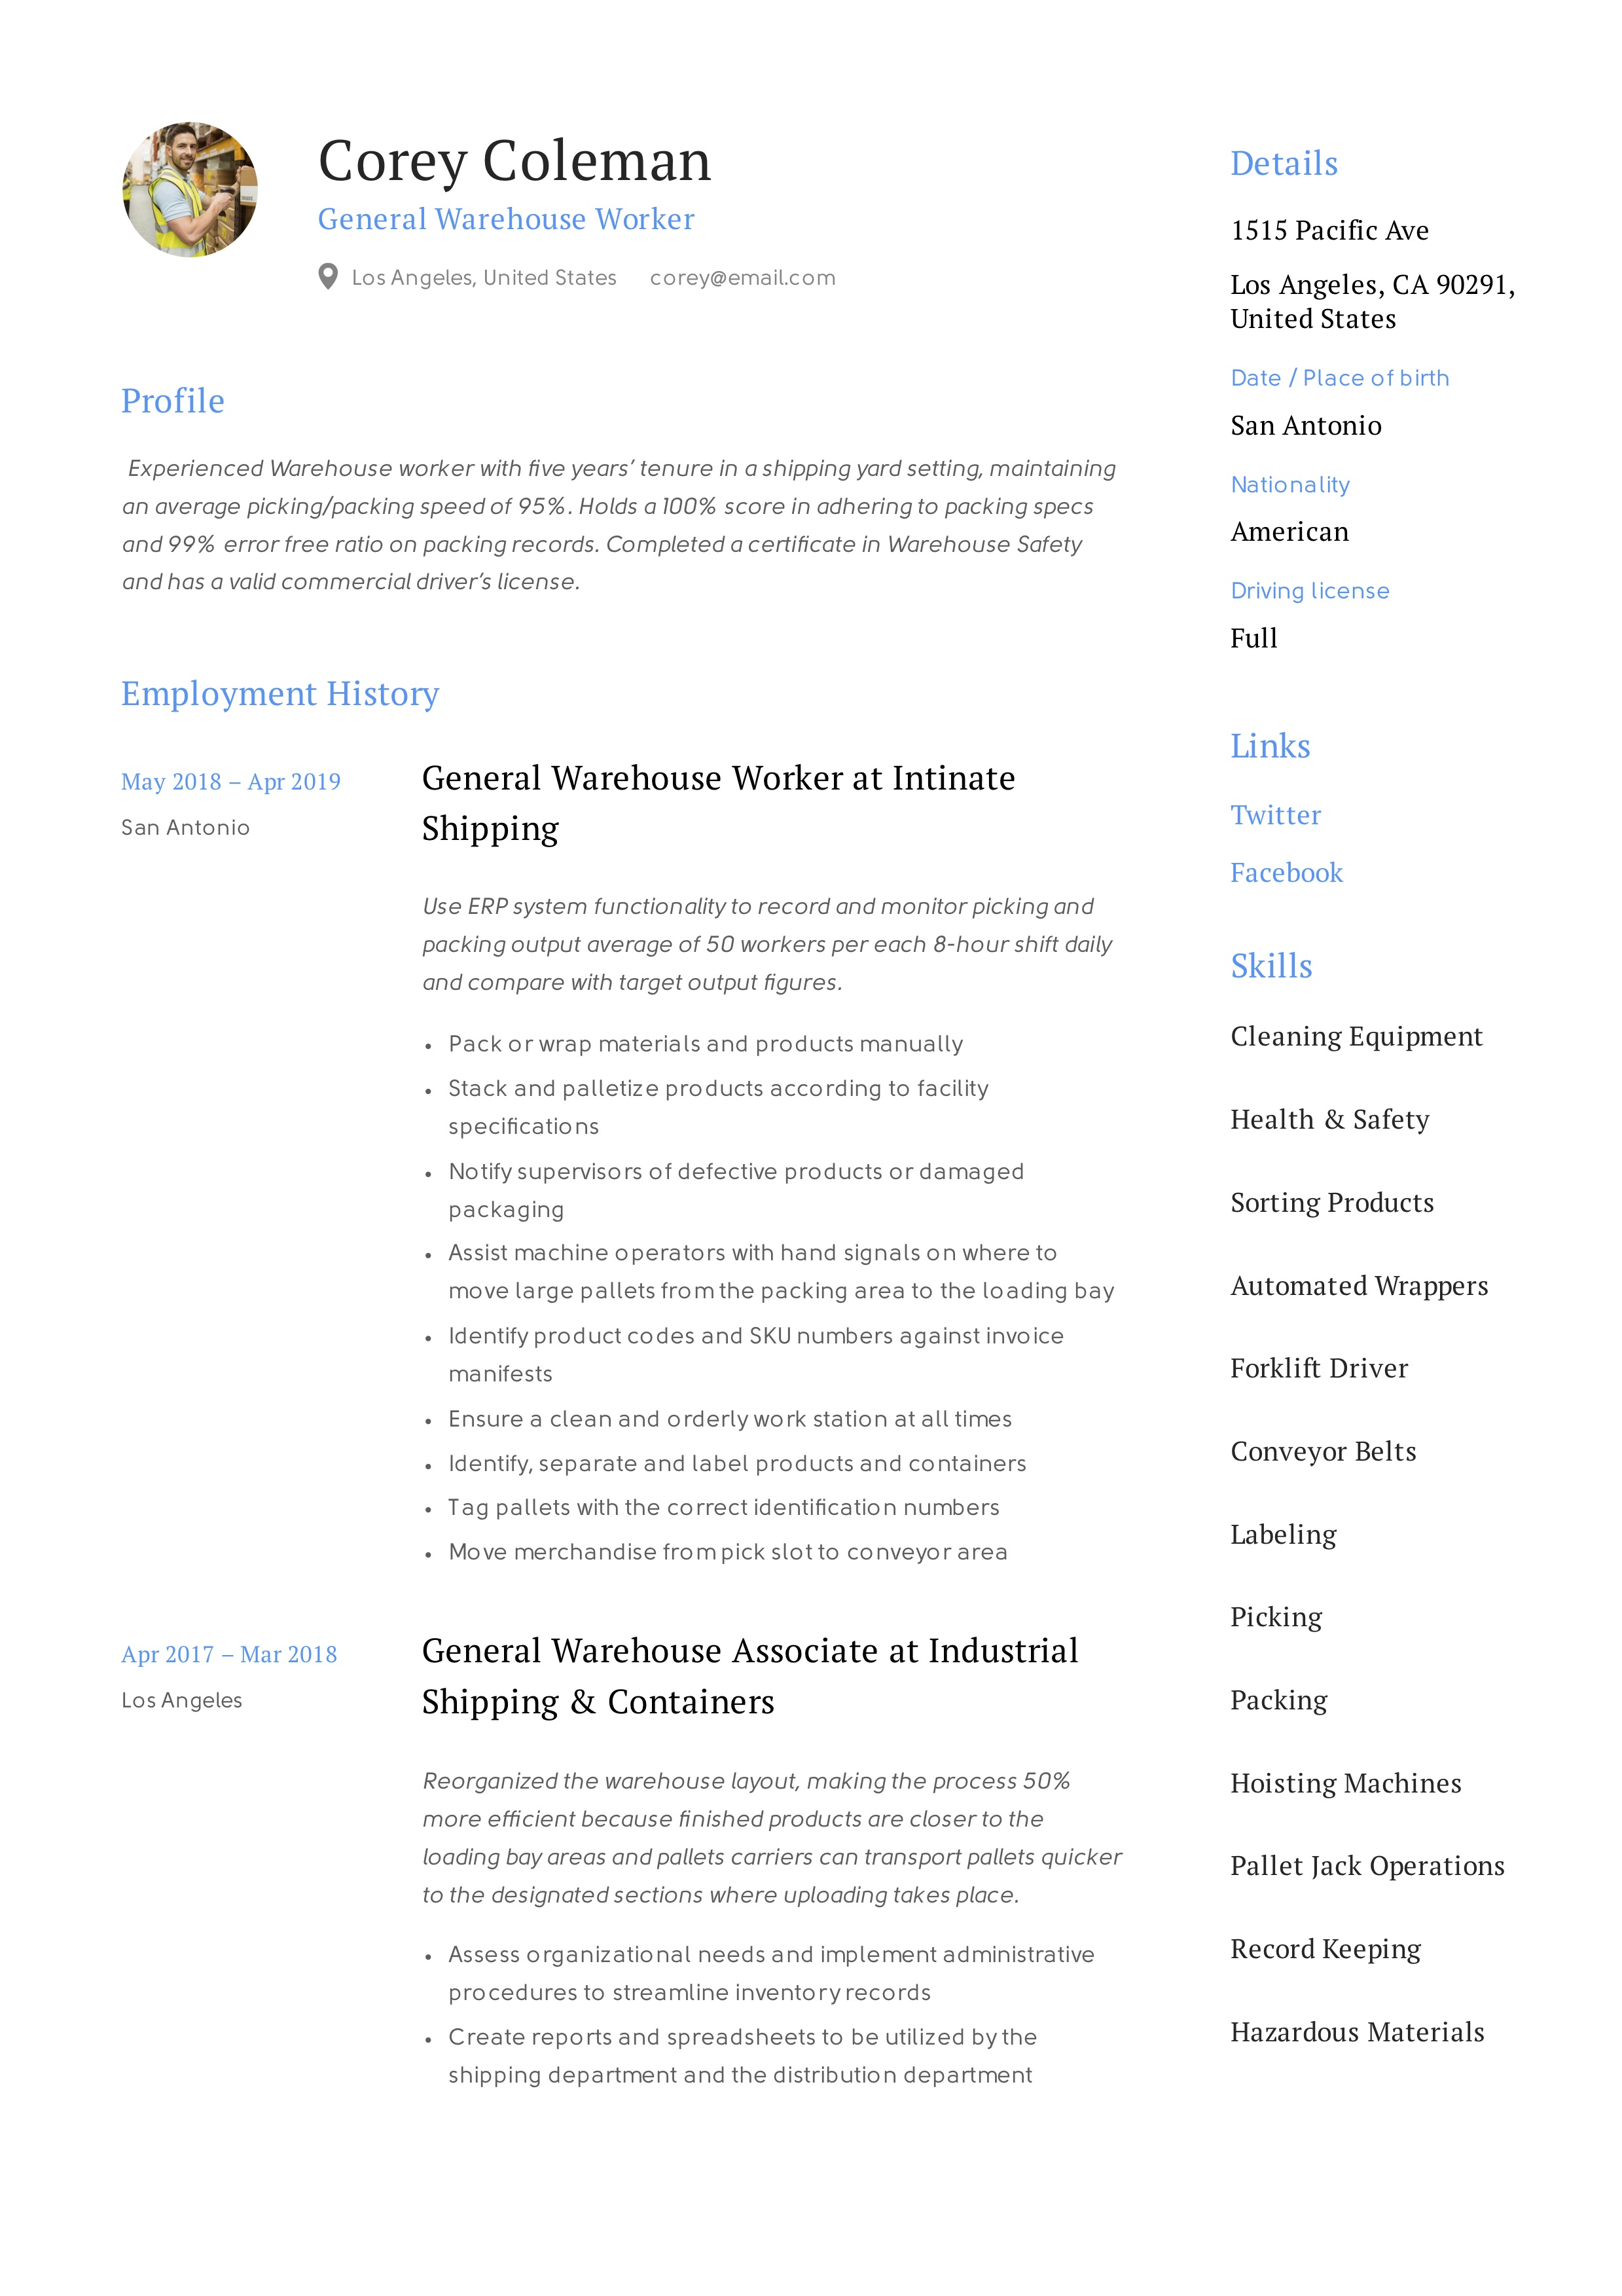 general warehouse worker resume guide